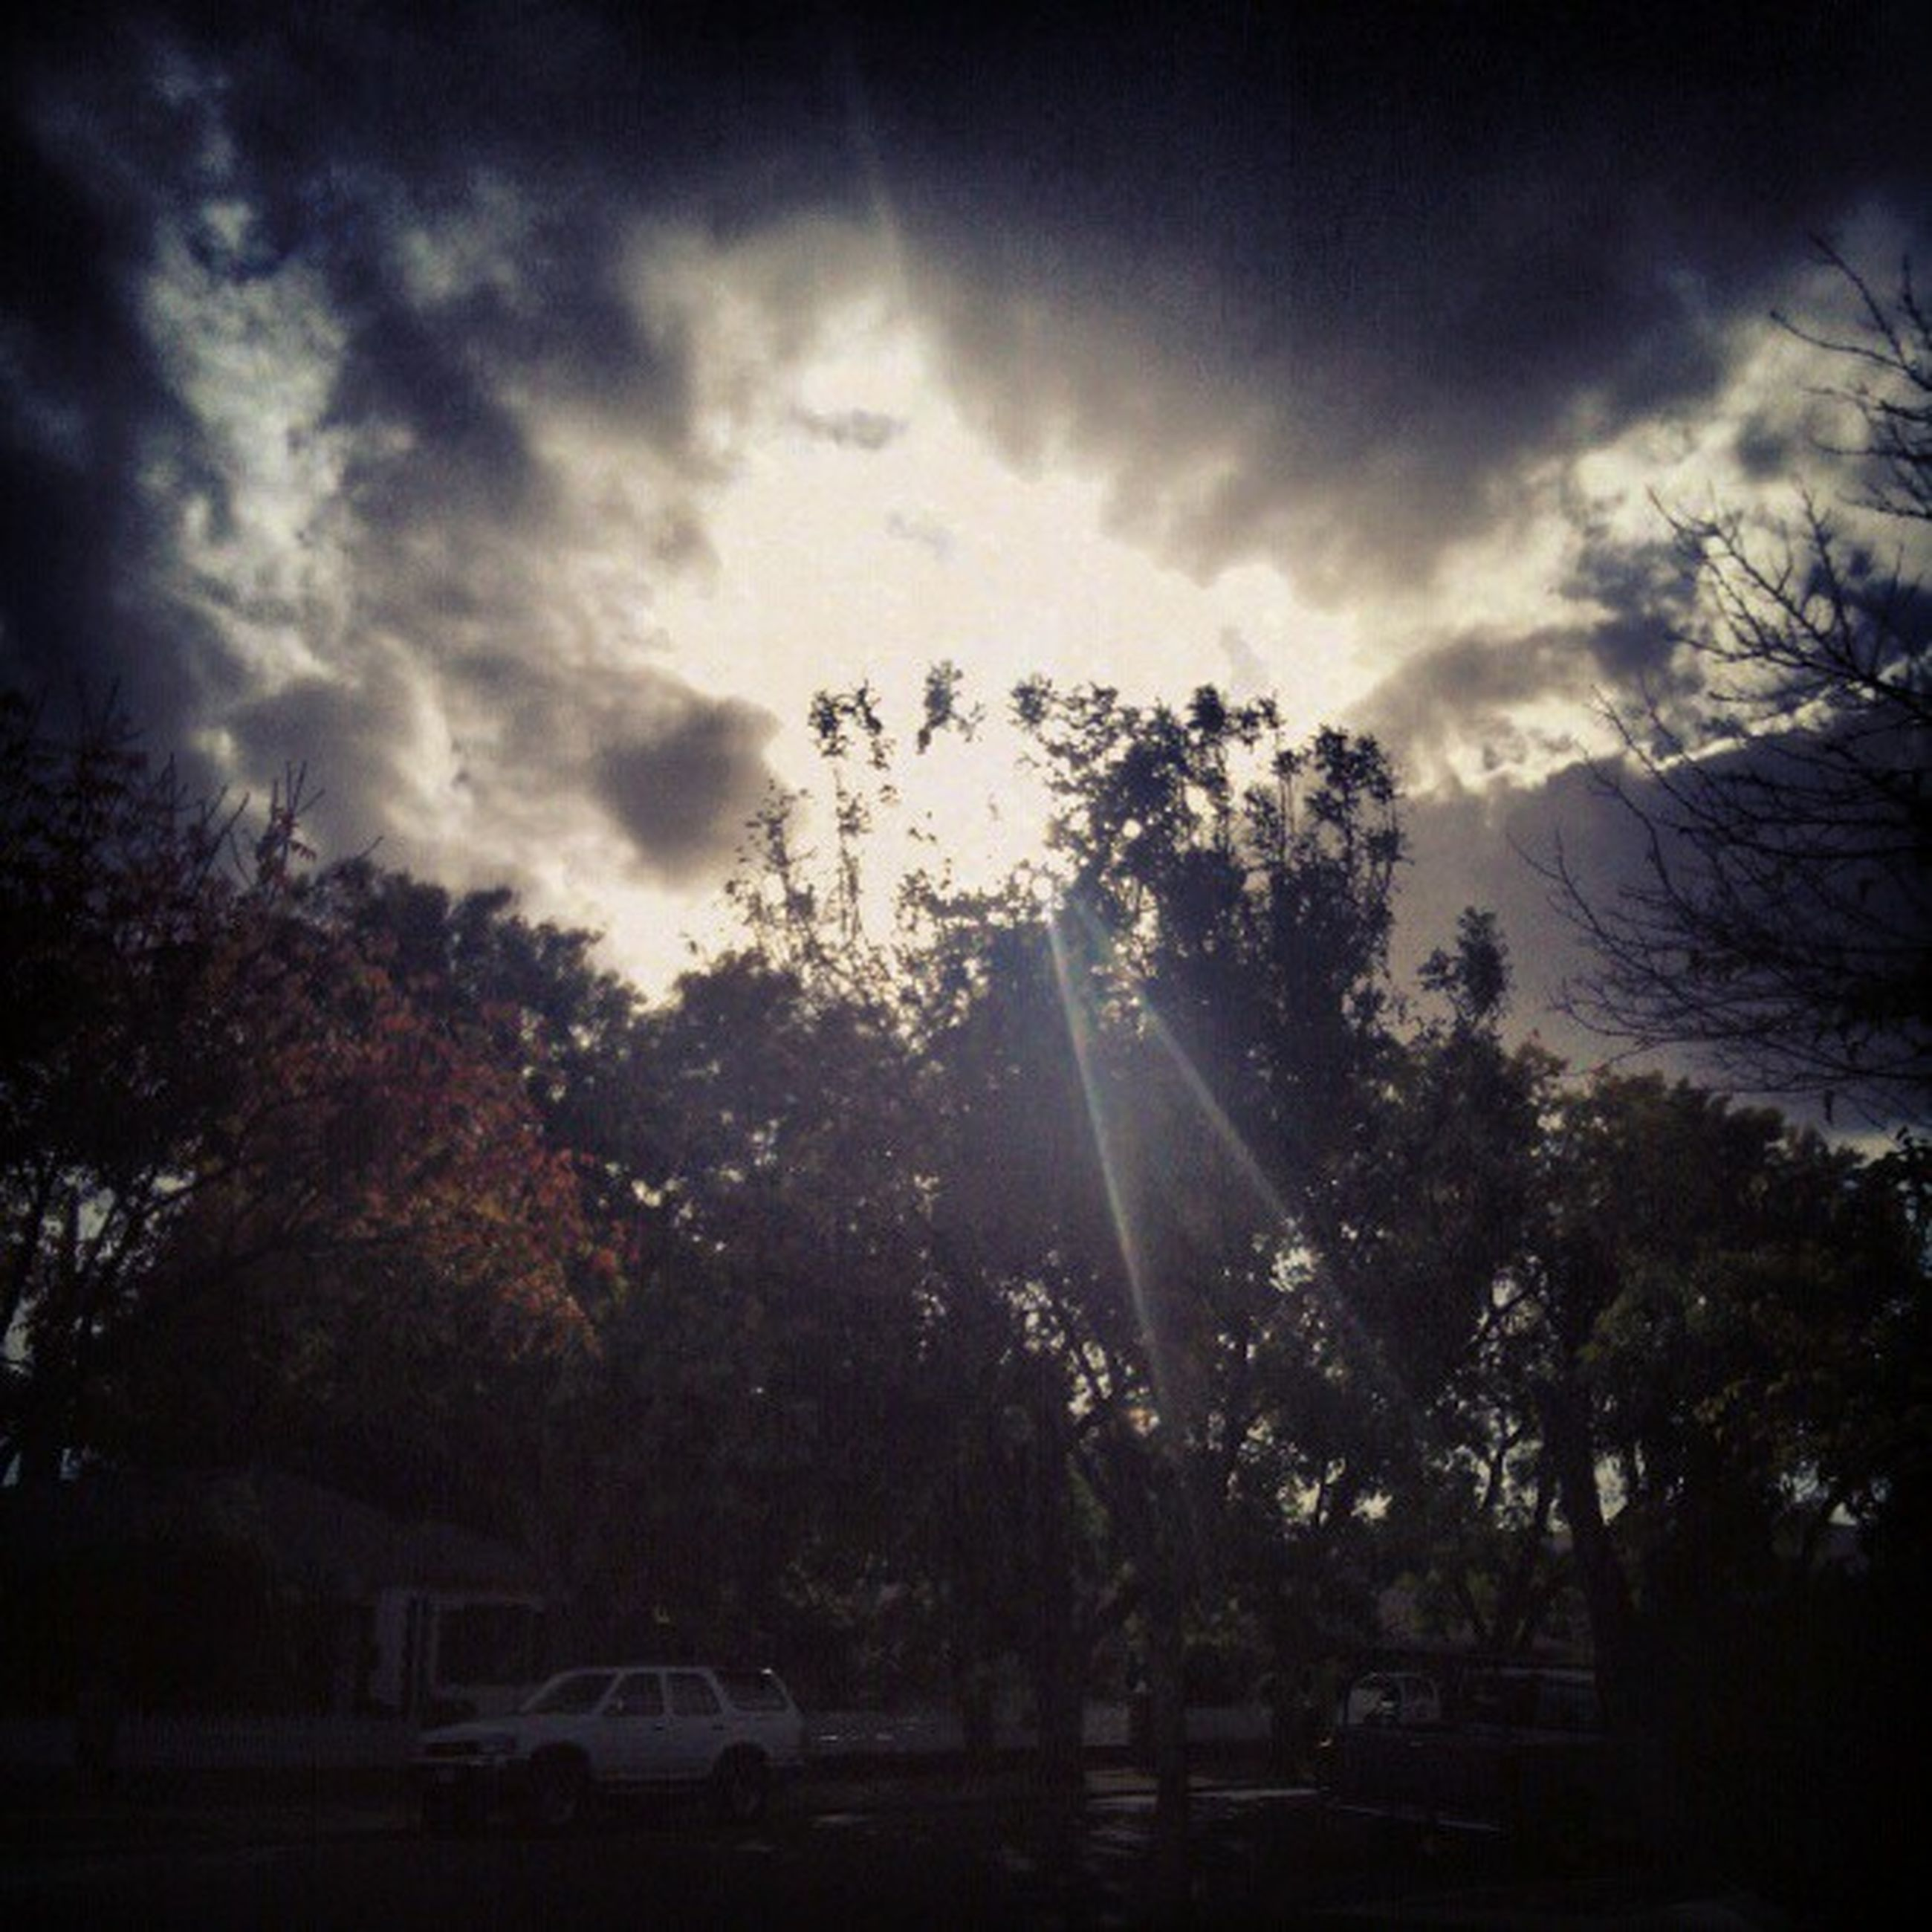 tree, sky, sun, sunbeam, cloud - sky, sunlight, silhouette, lens flare, cloudy, nature, tranquility, scenics, beauty in nature, tranquil scene, cloud, transportation, car, low angle view, outdoors, land vehicle